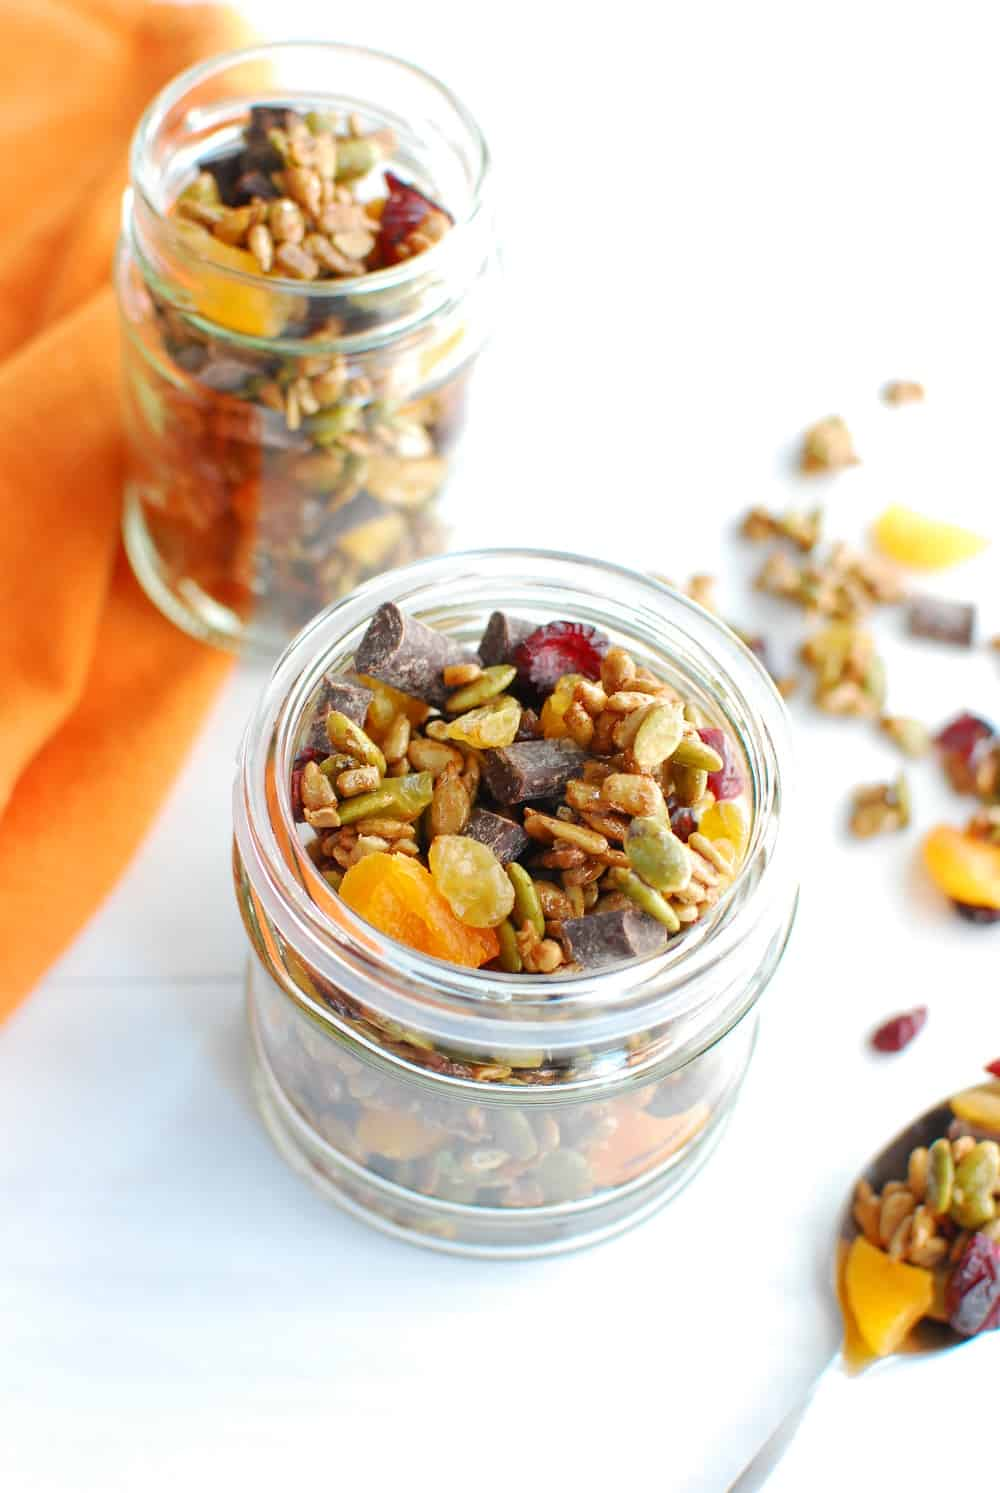 A jar of nut free trail mix